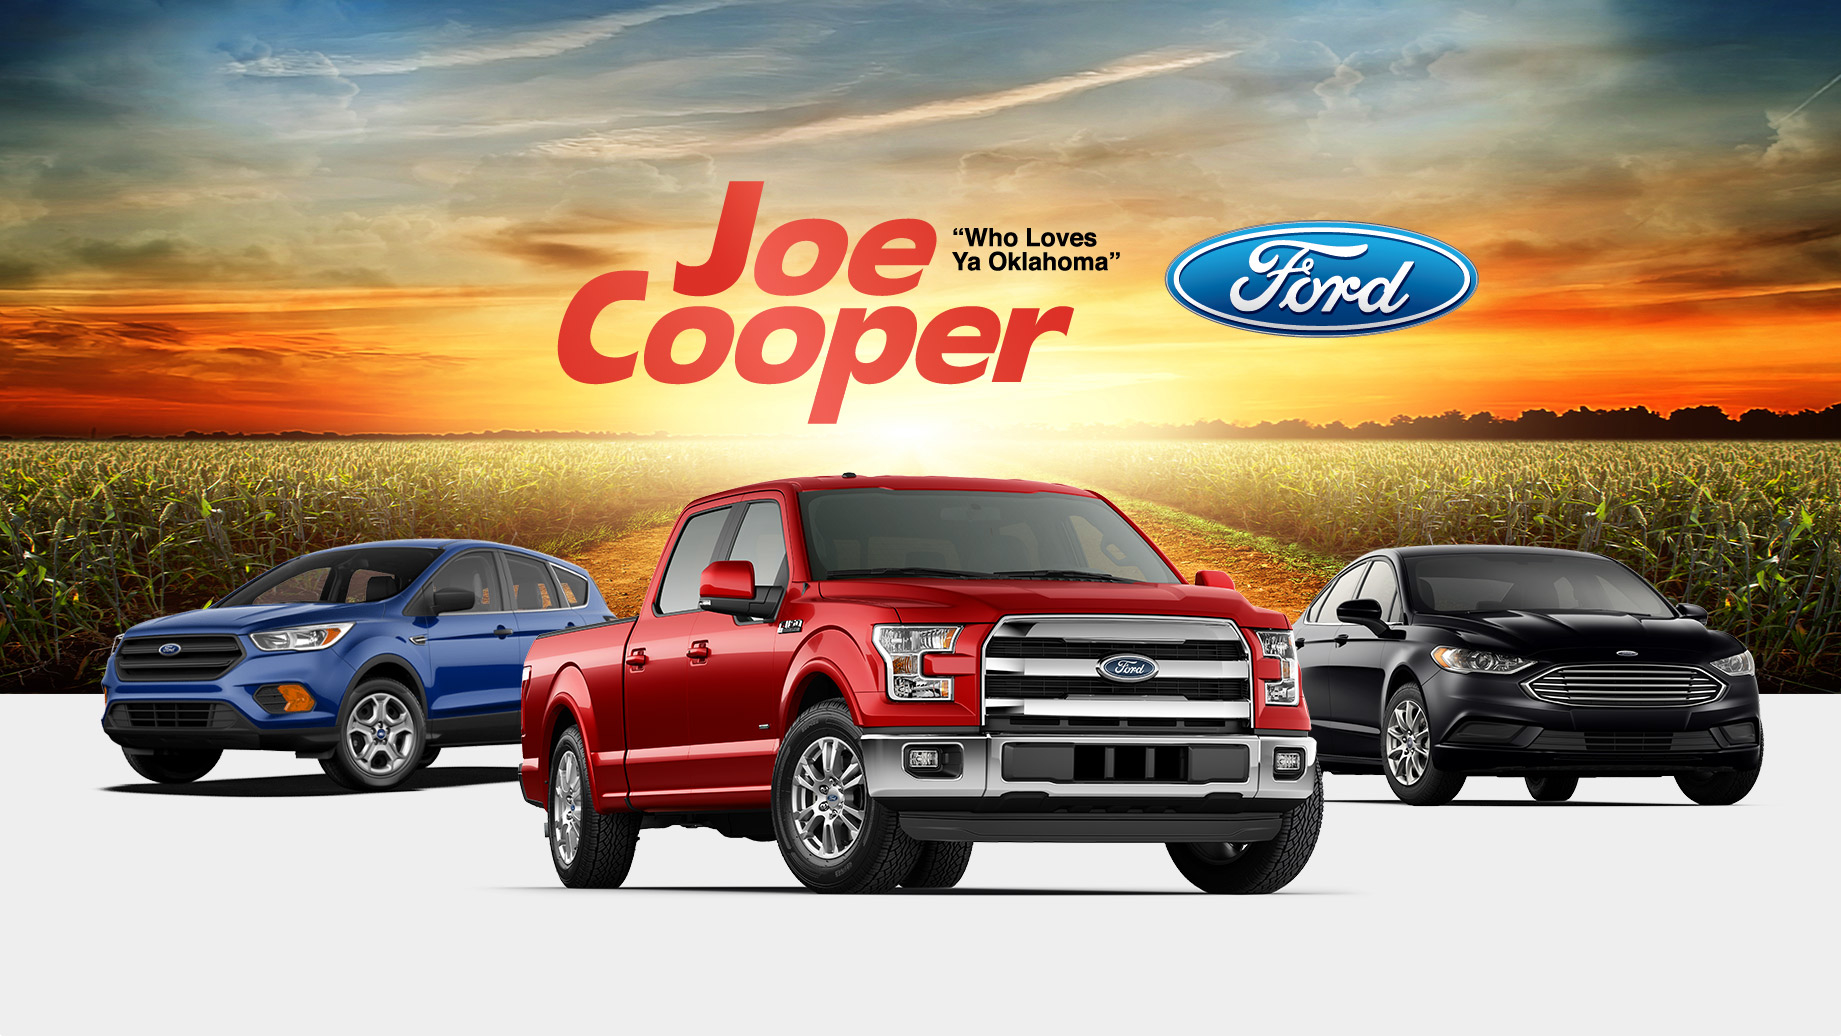 joe cooper ford yukon in yukon ok whitepages. Cars Review. Best American Auto & Cars Review